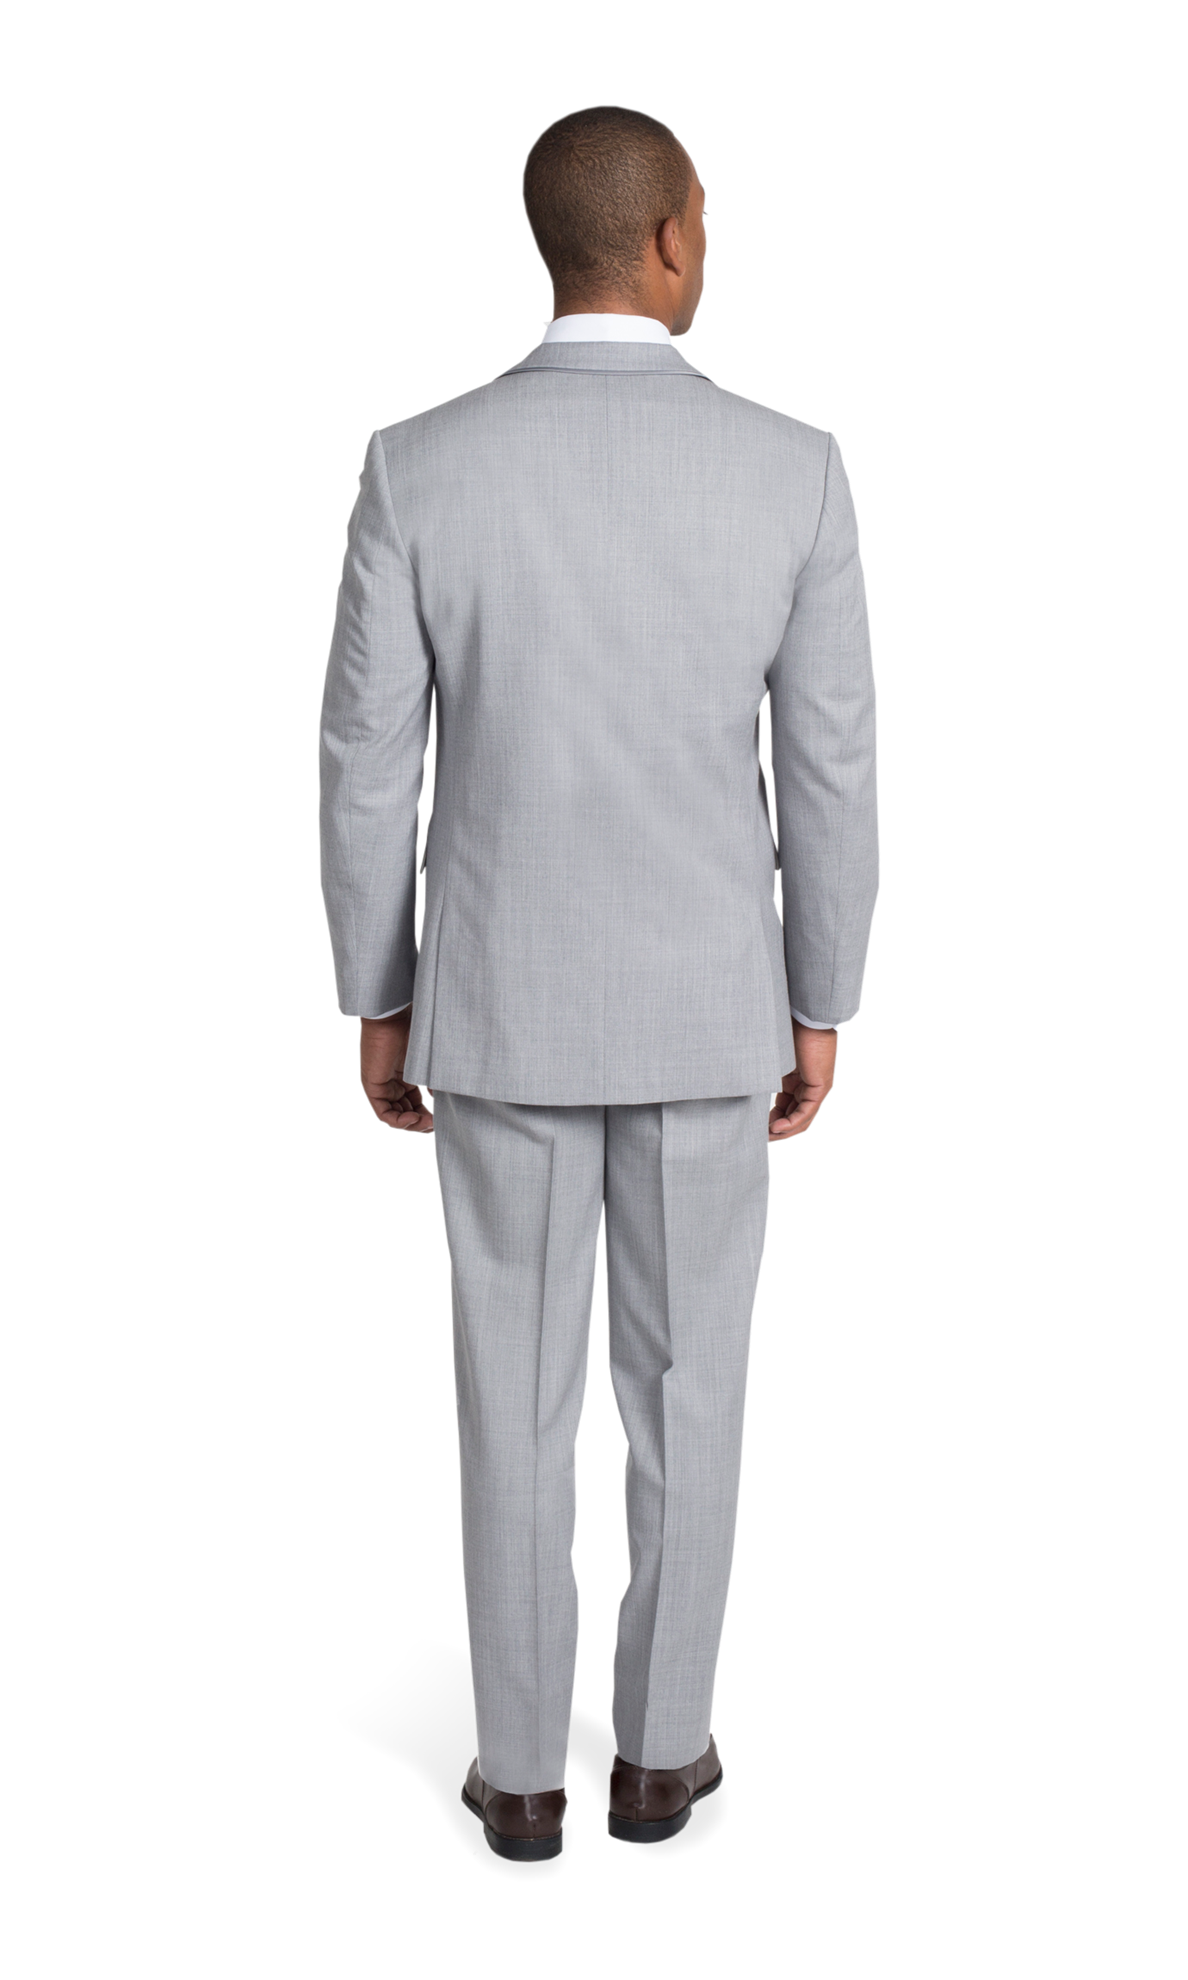 Heather Gray Notch Lapel Suit - View 4